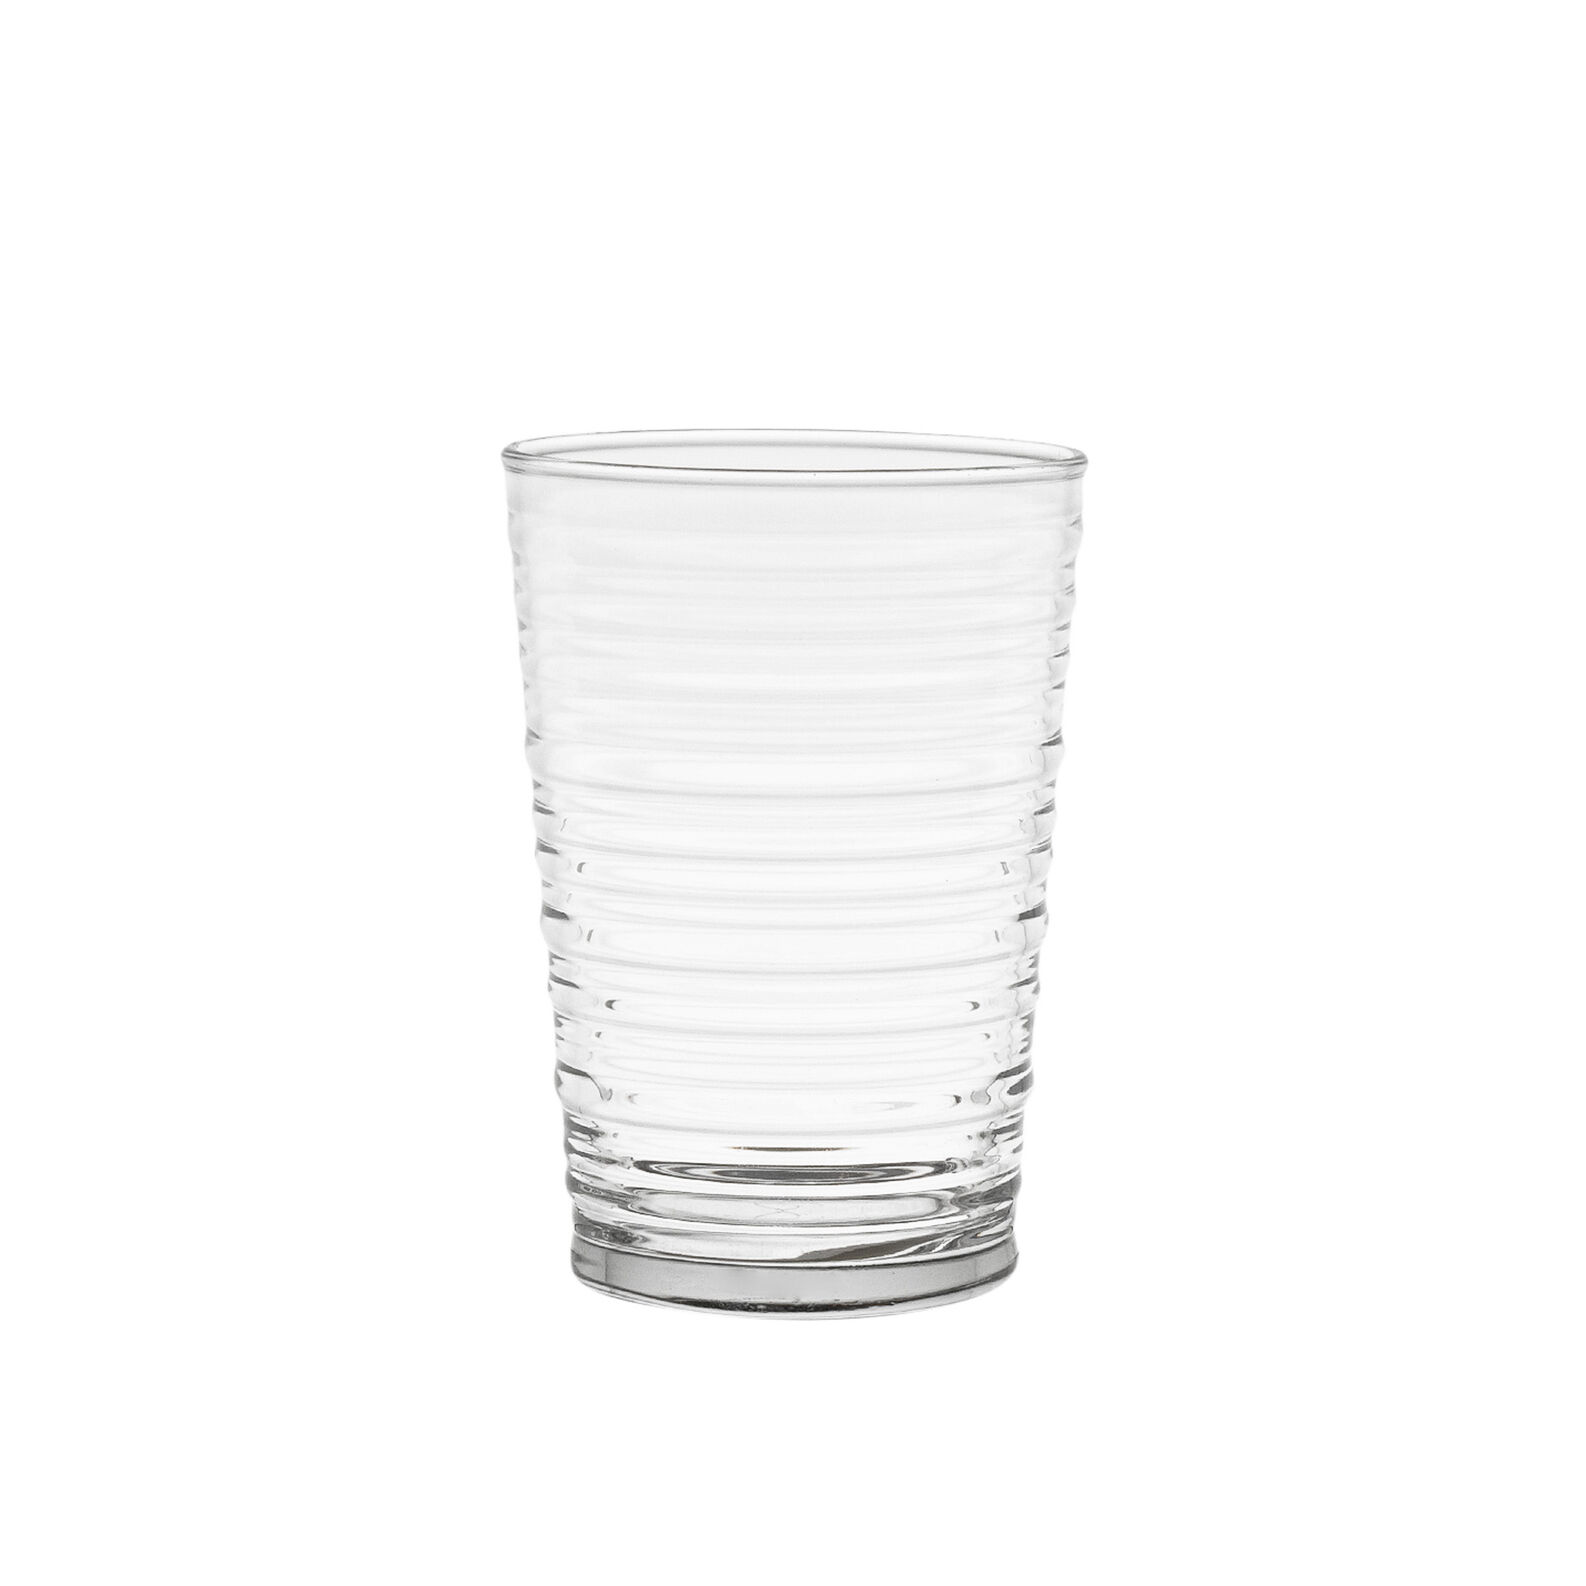 Water tumbler with fluting